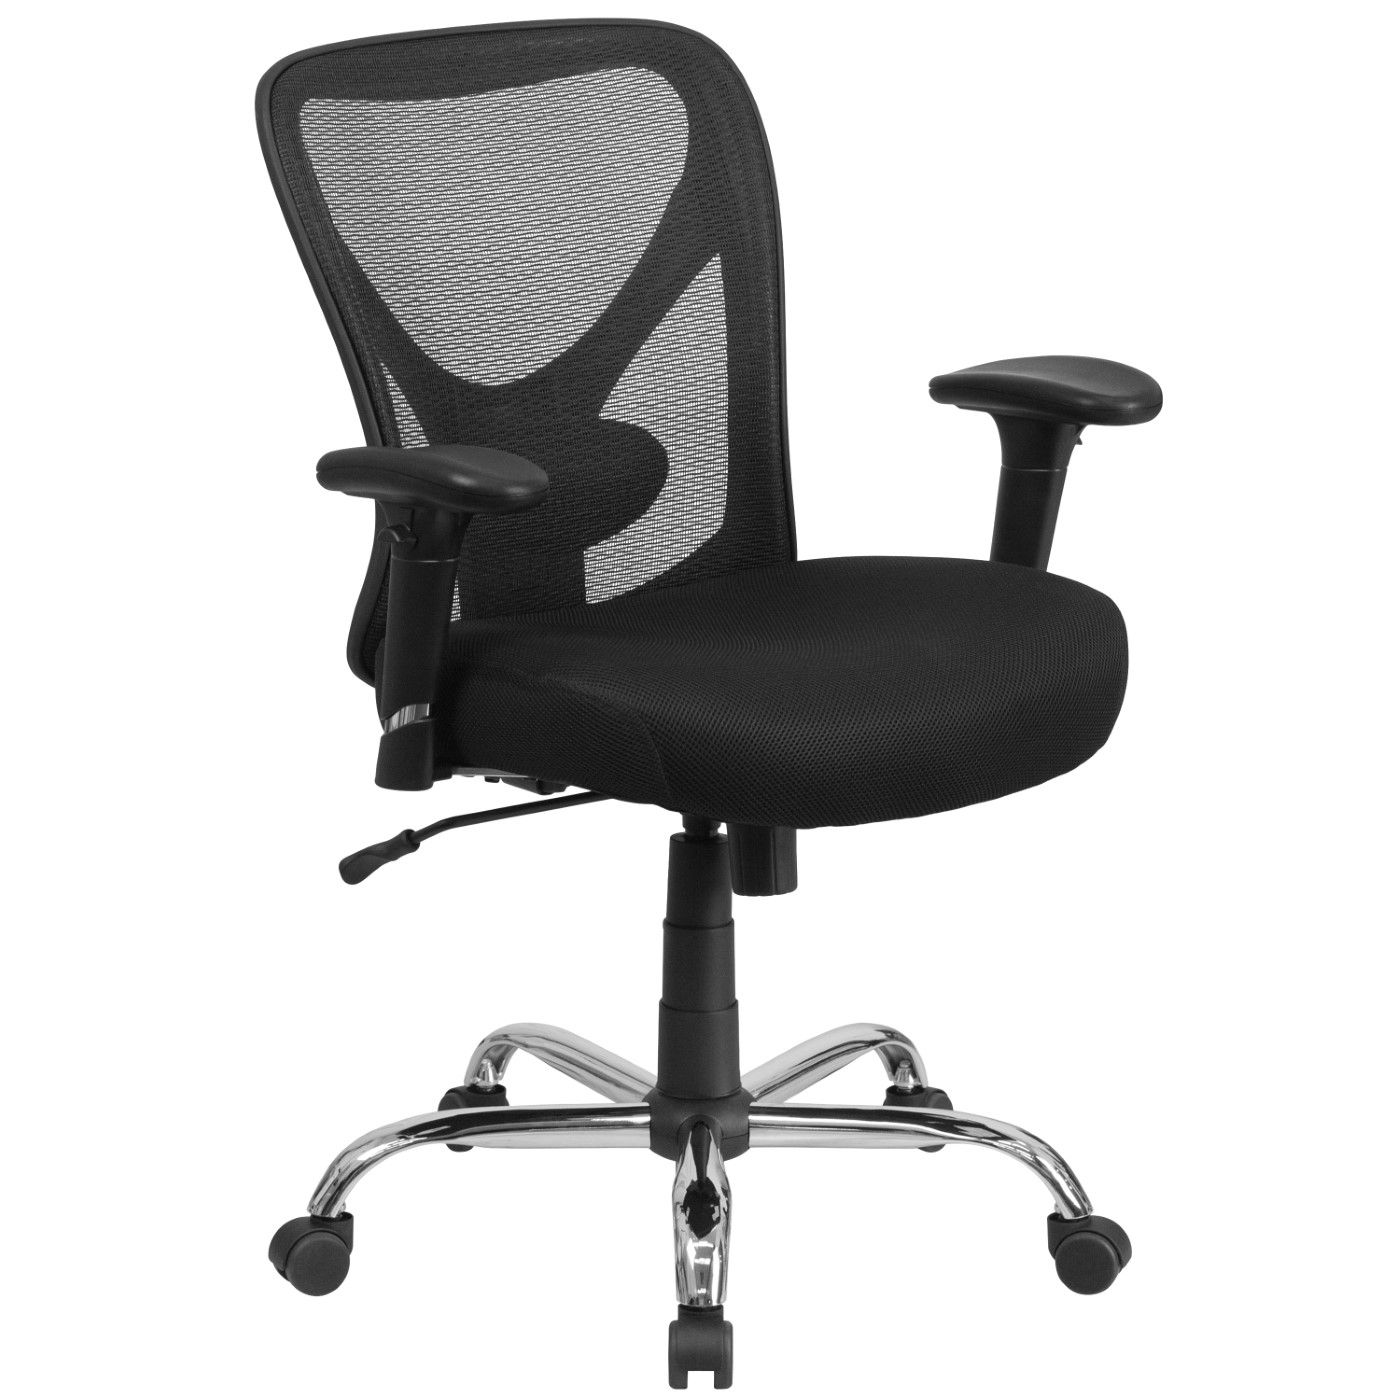 Big & Tall Office Chair|Adjustable Height Mesh Swivel Office Chair with Wheels